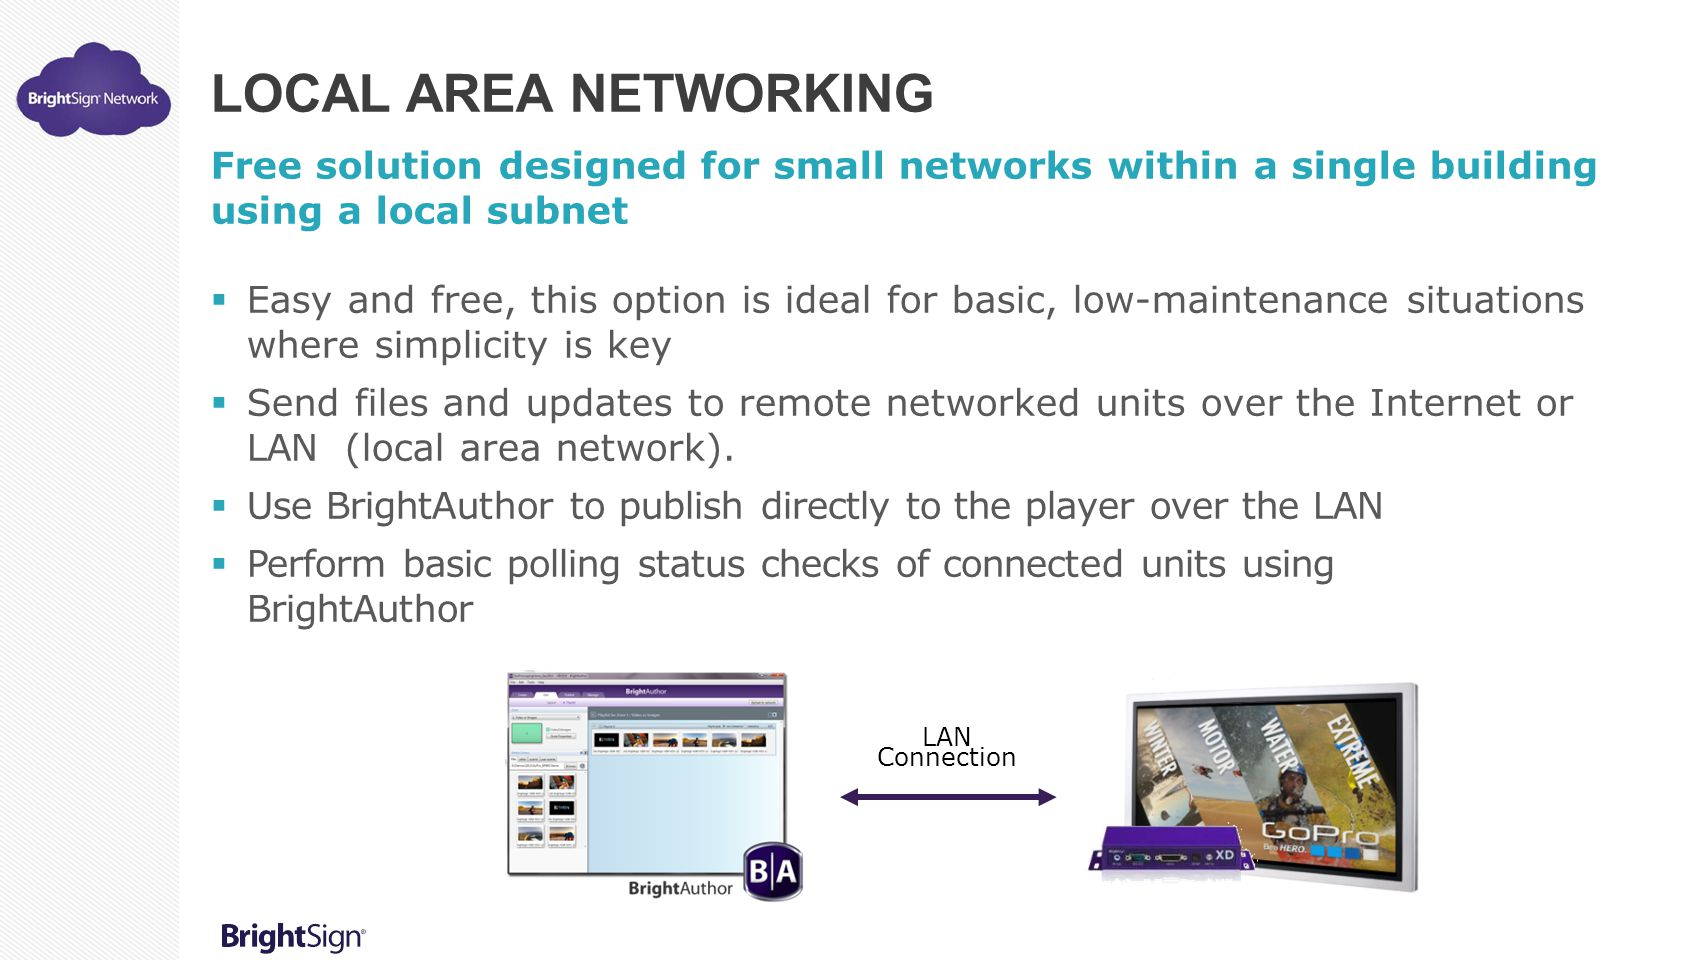 Local Area Networking Free solution designed for small networks within a single building using a local subnet.